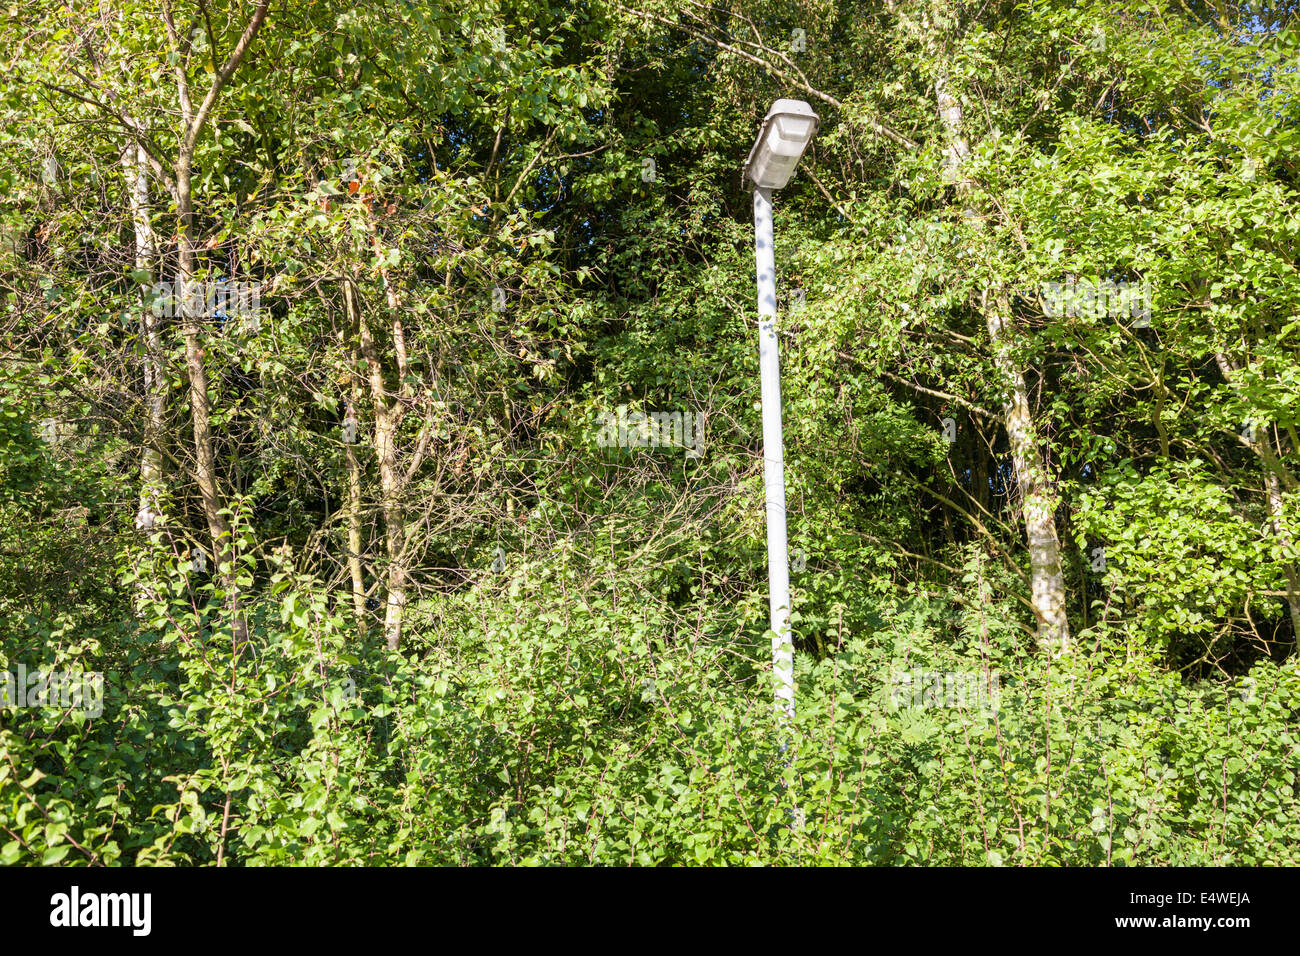 Lamppost and streetlight hidden in trees and becoming overgrown, England, UK - Stock Image